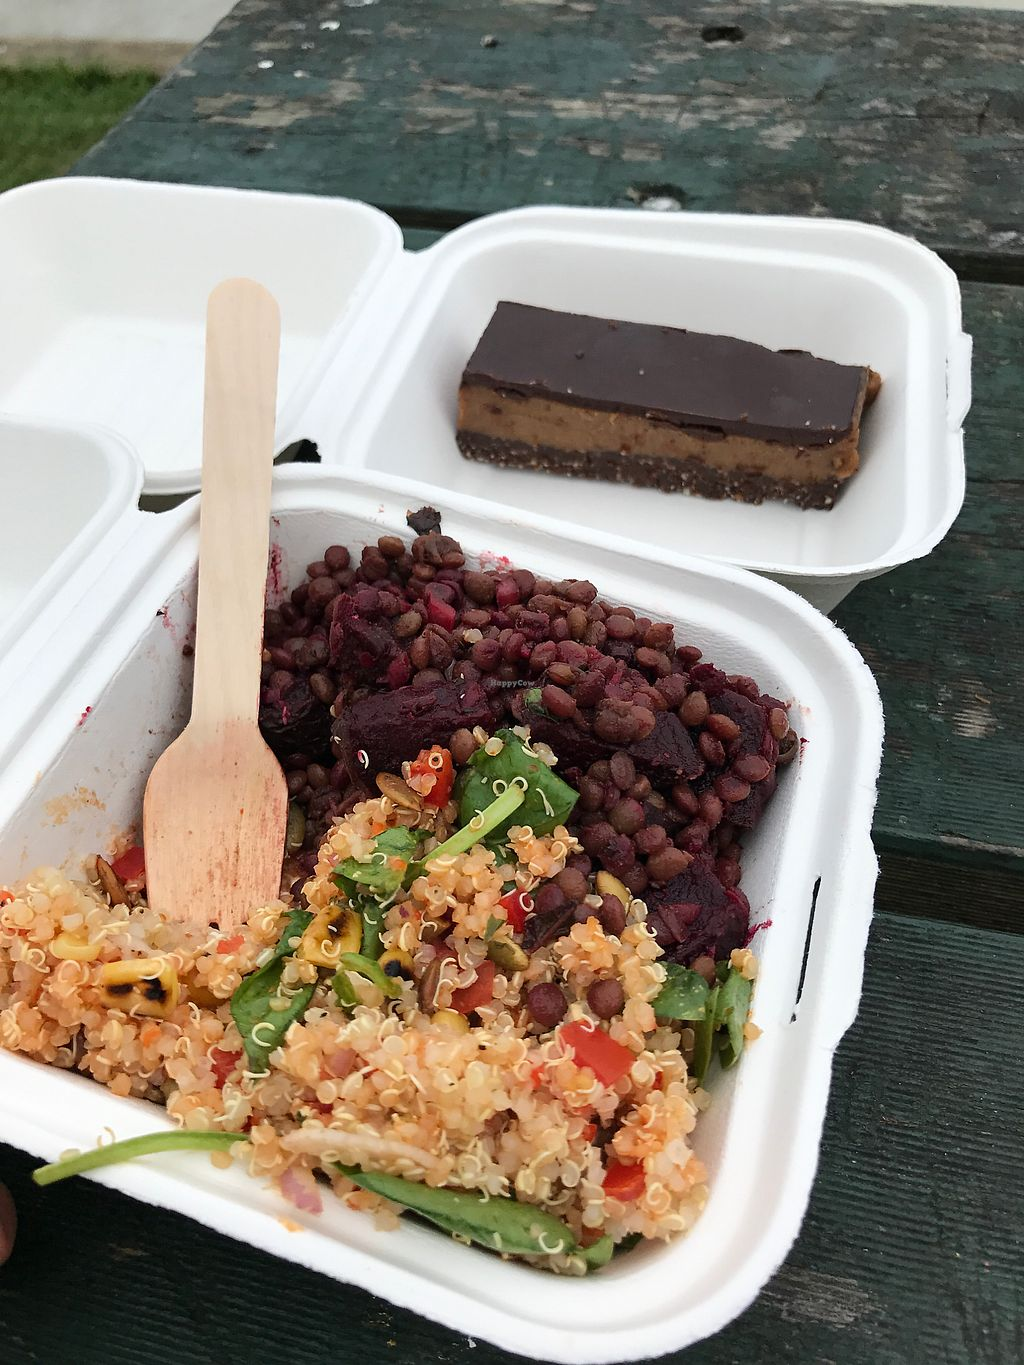 """Photo of The Pantry  by <a href=""""/members/profile/SabrinaMcKenzie"""">SabrinaMcKenzie</a> <br/>Delicious salad and raw cake  <br/> January 24, 2018  - <a href='/contact/abuse/image/108619/350580'>Report</a>"""